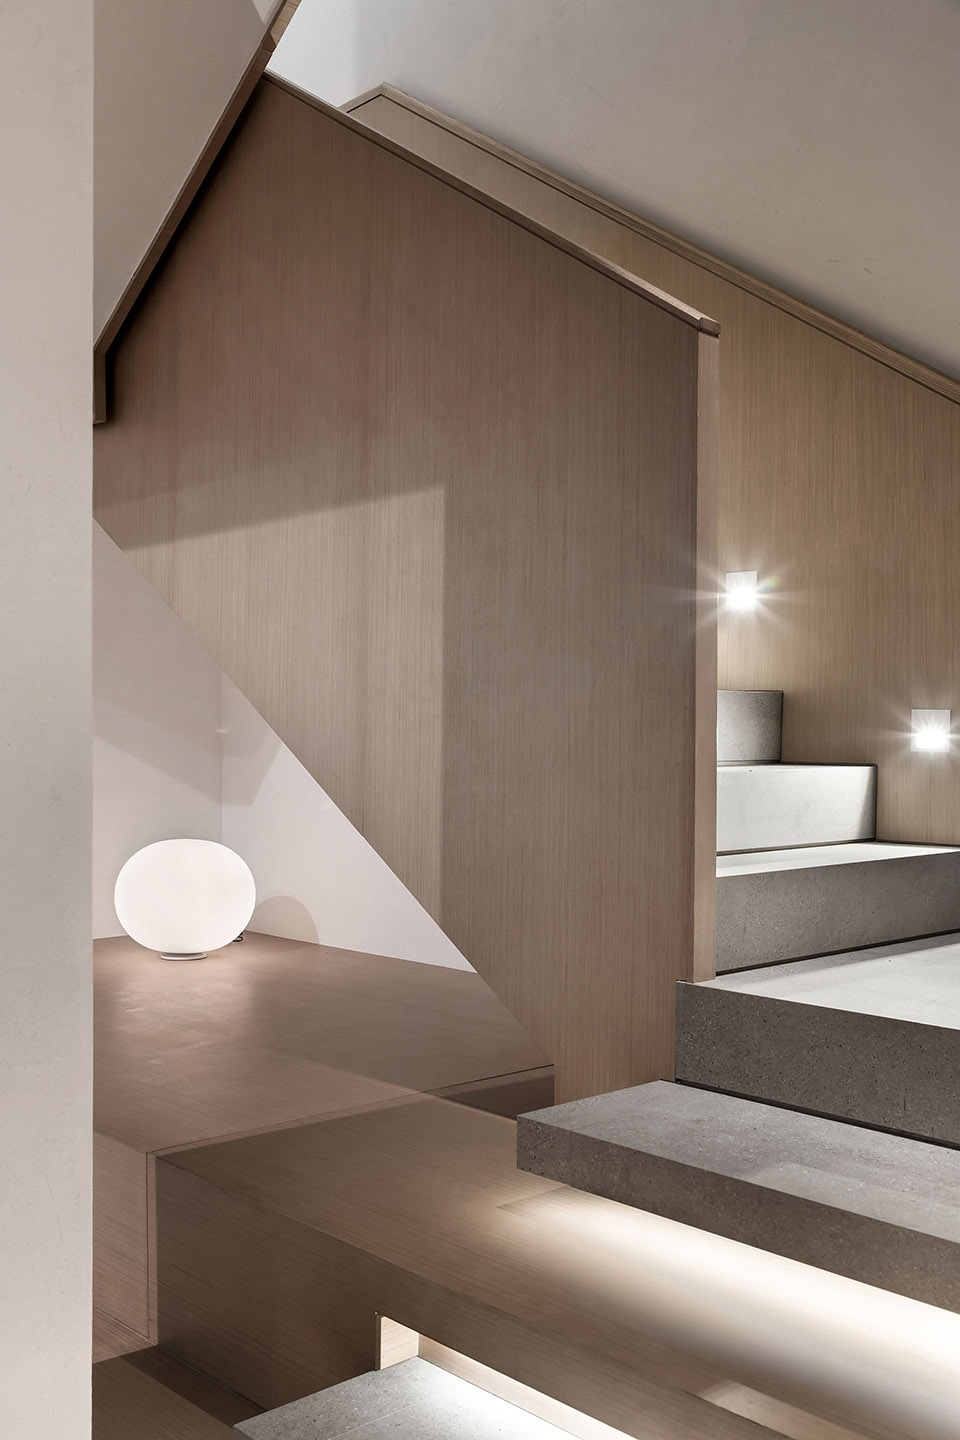 049-a-desired-home-china-by-liang-architecture-studio-960x1440.jpg